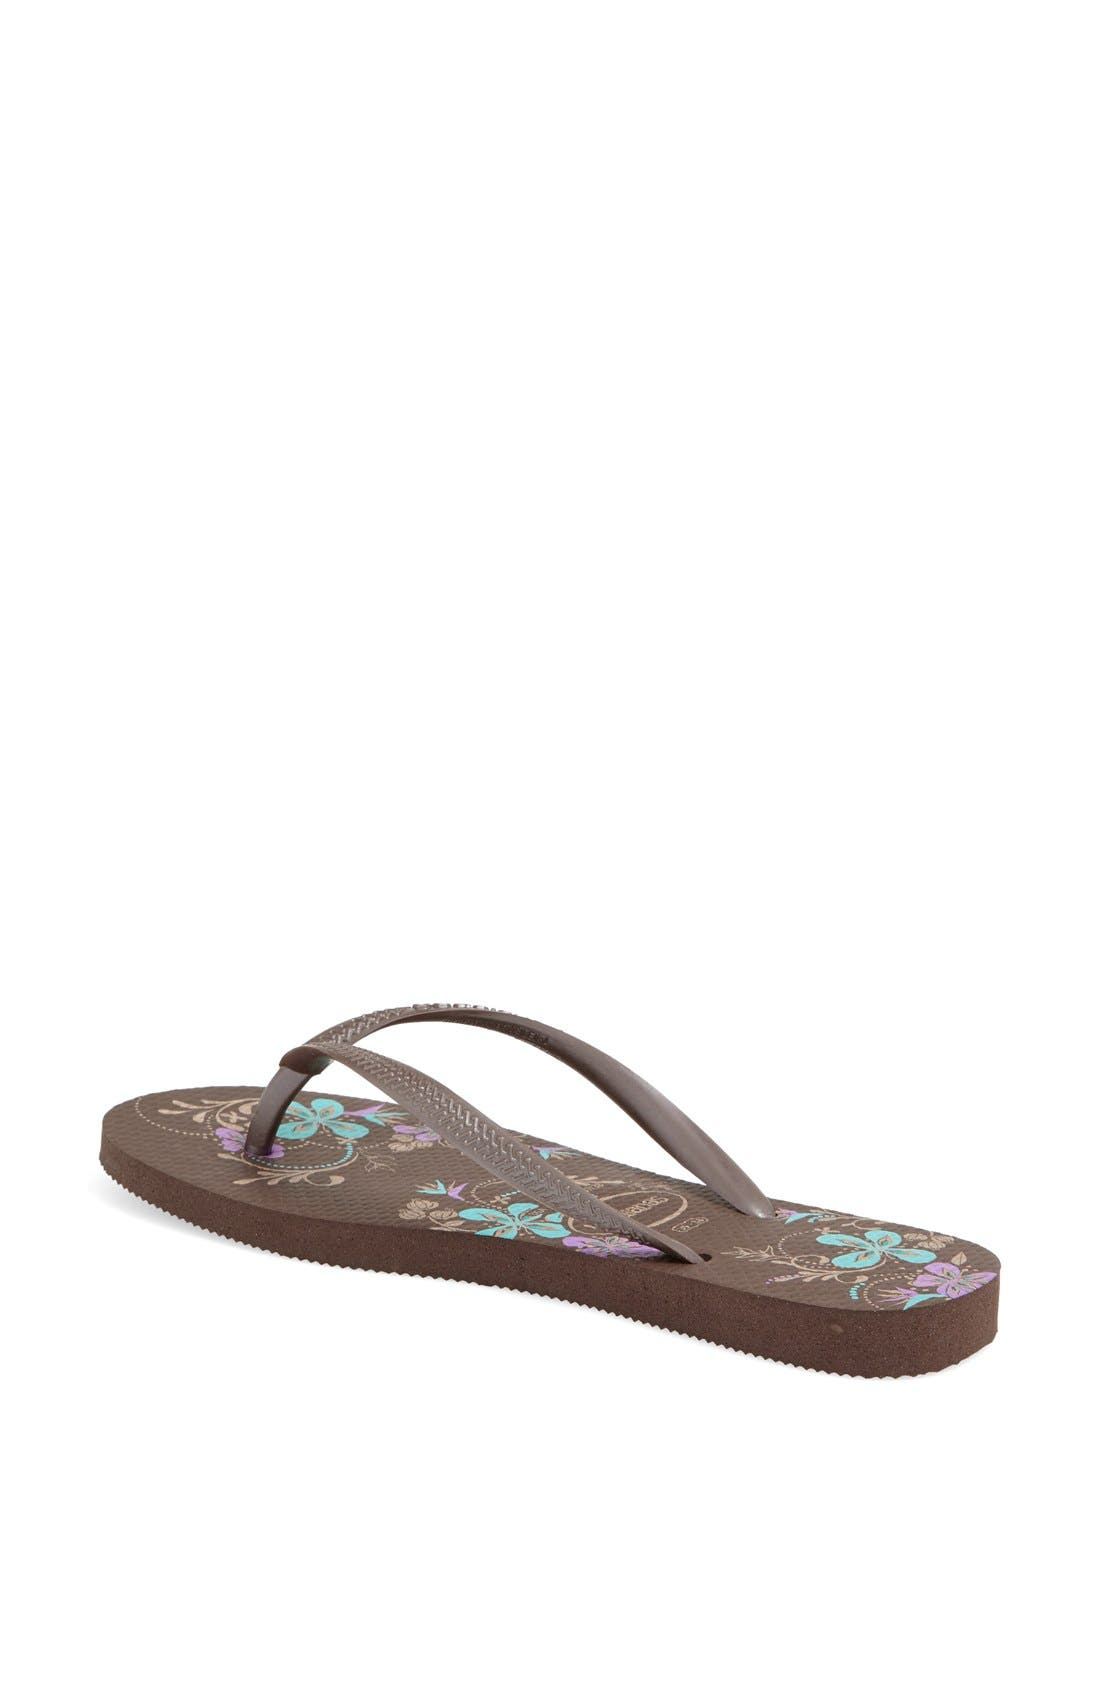 Alternate Image 2  - Havaianas 'Slim' Flip Flop (Women)